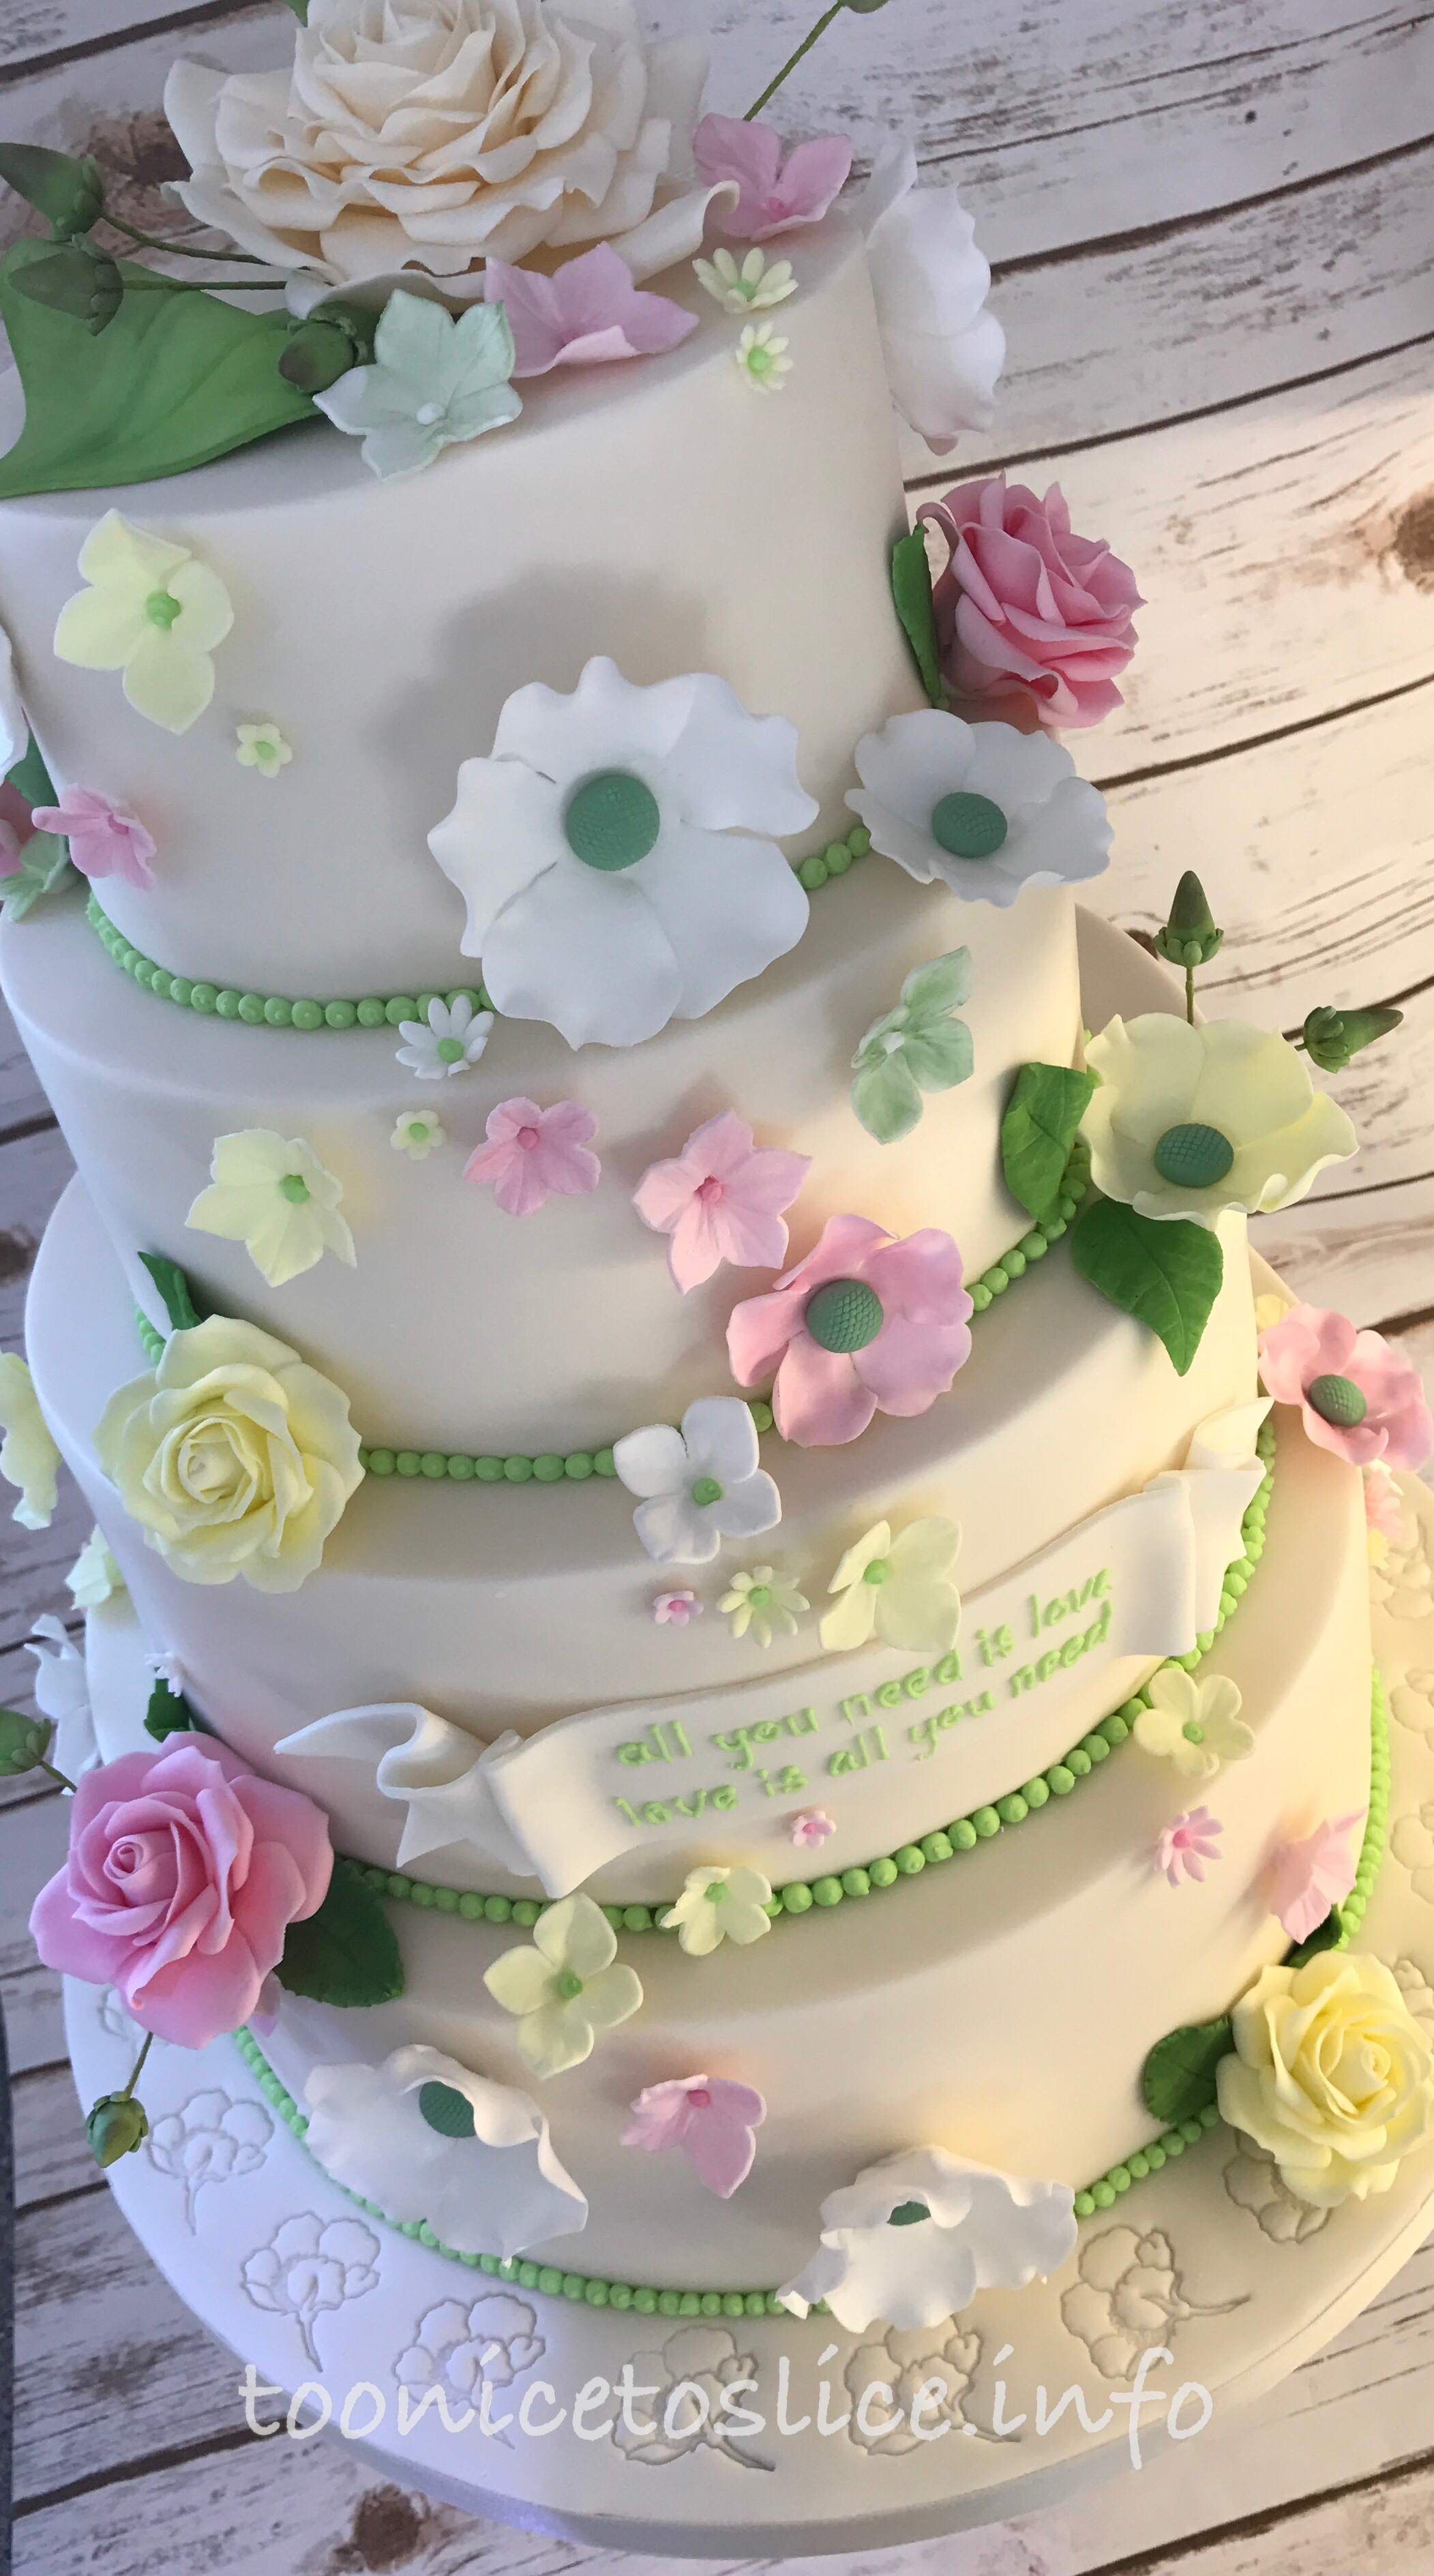 4 or more tiered cakes